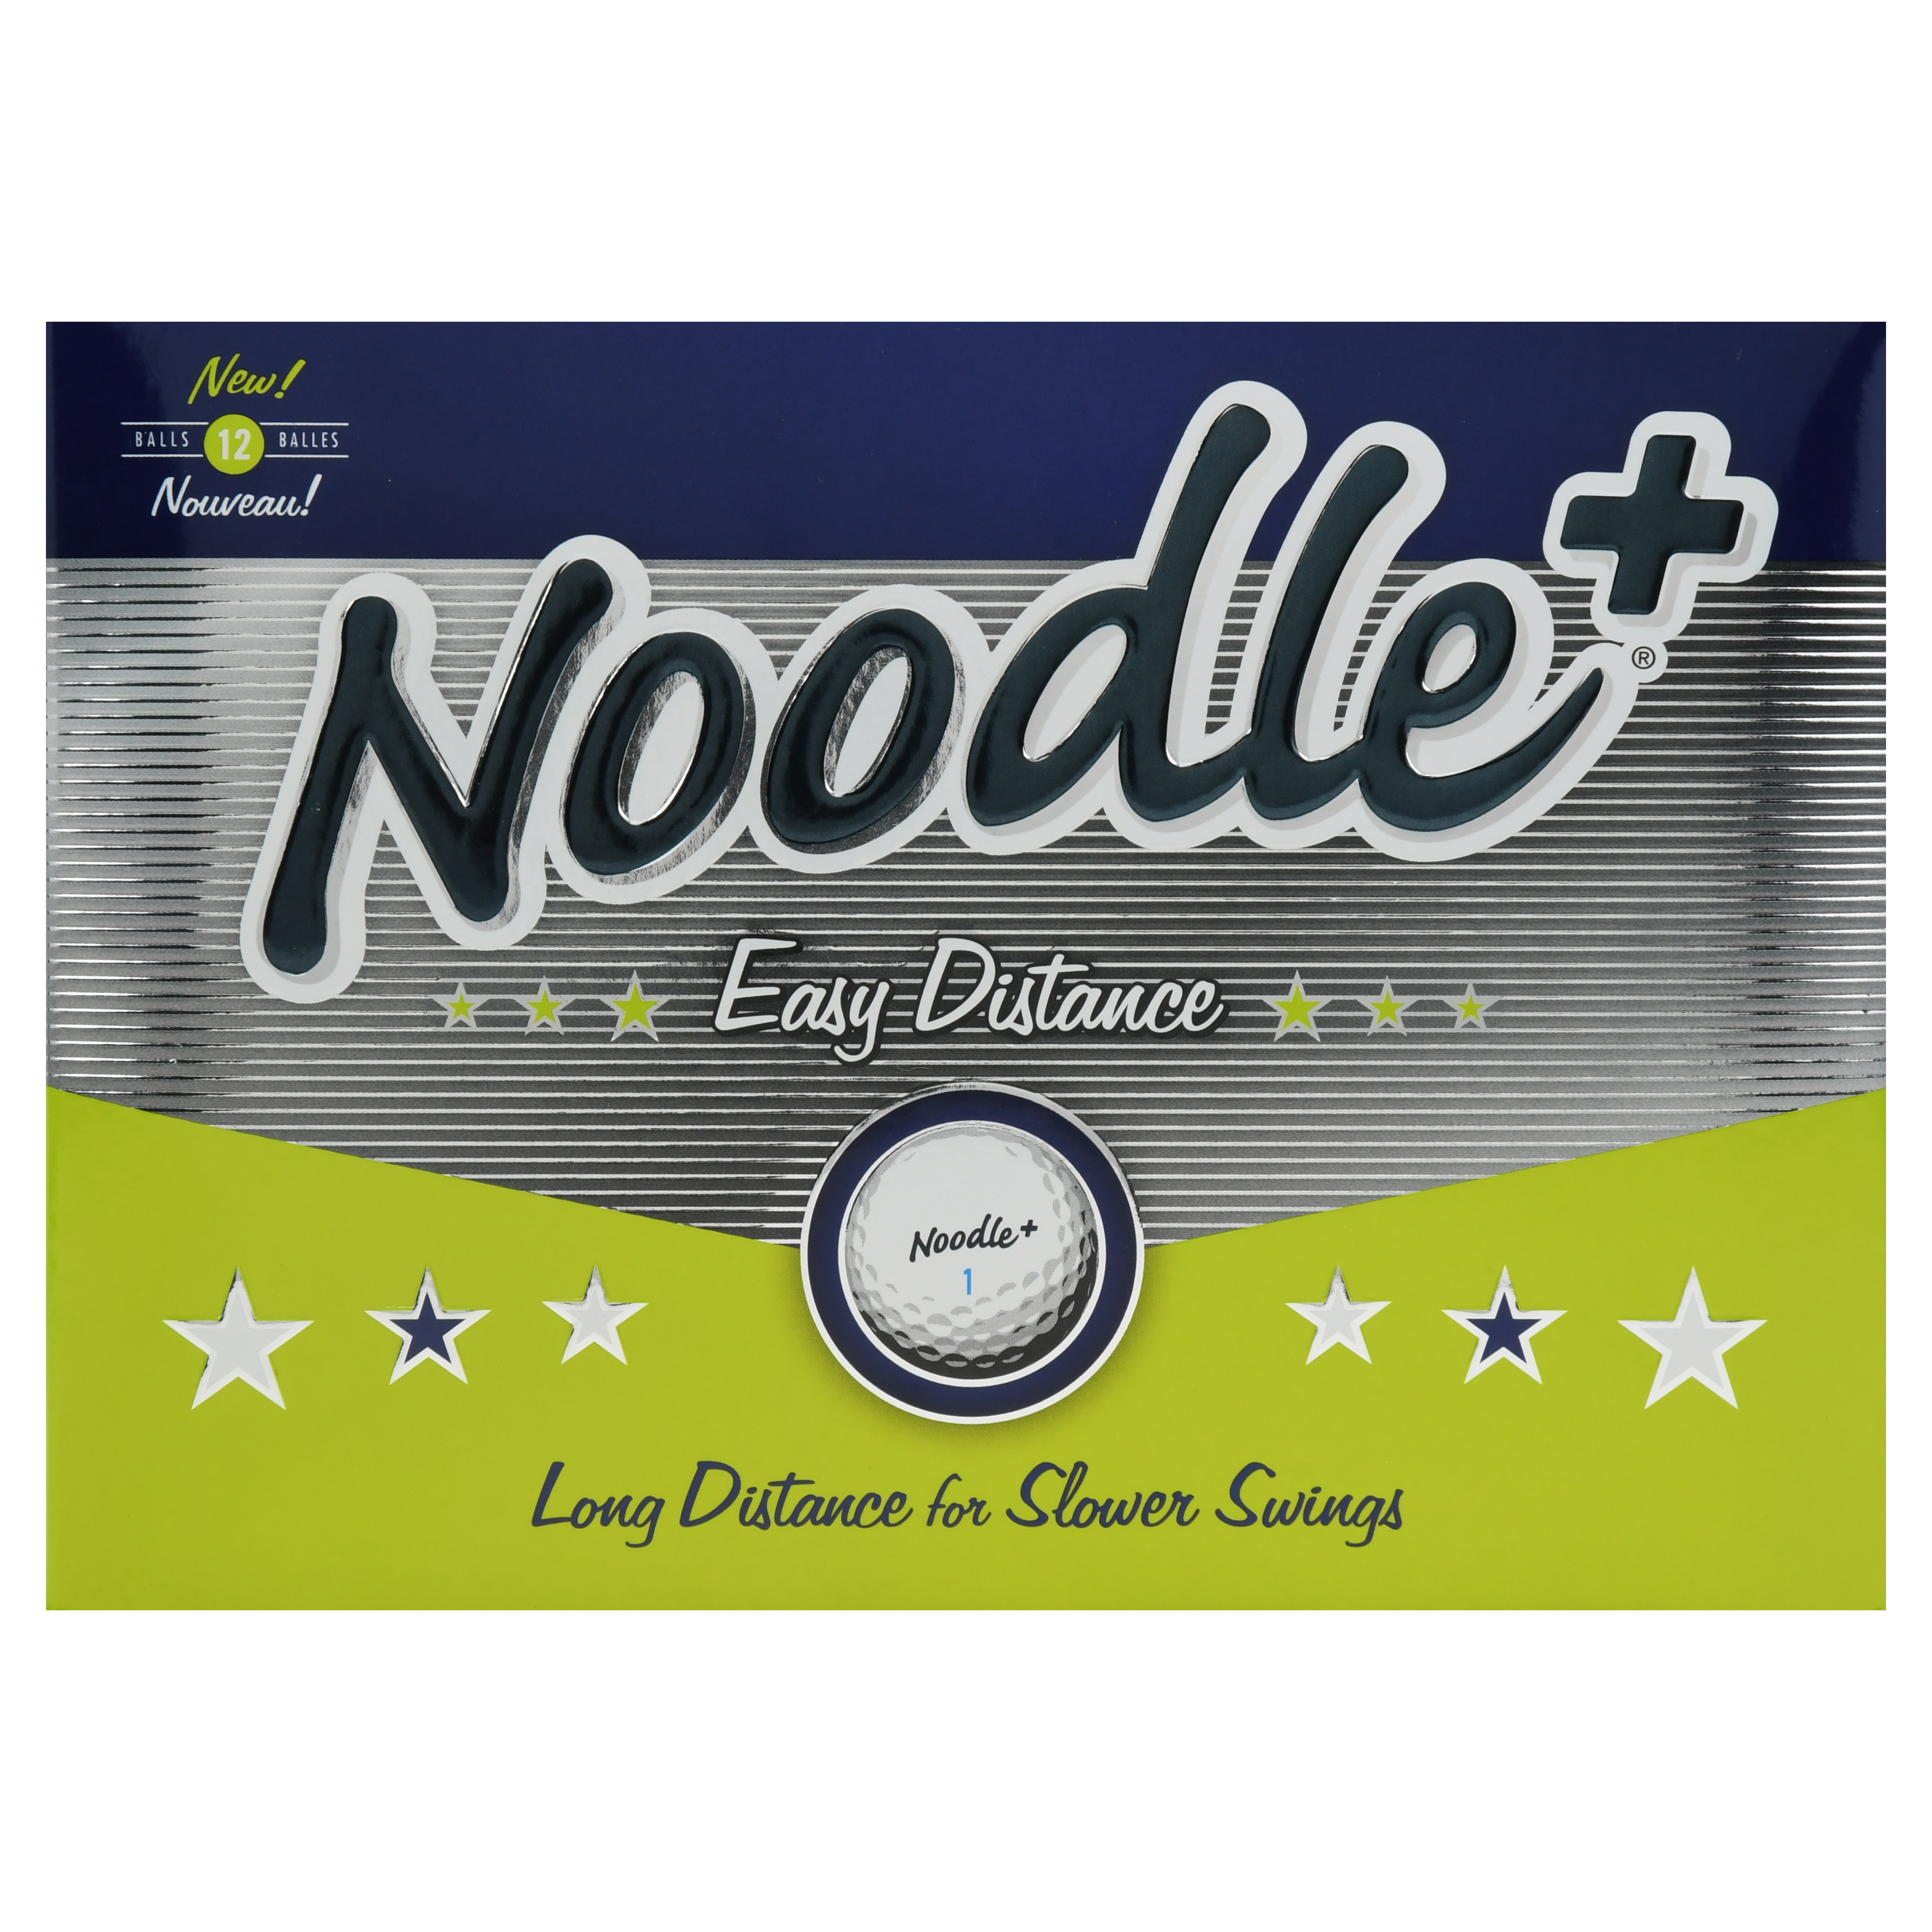 Noodle Plus Easy Distance Golf Balls (1 Dozen)